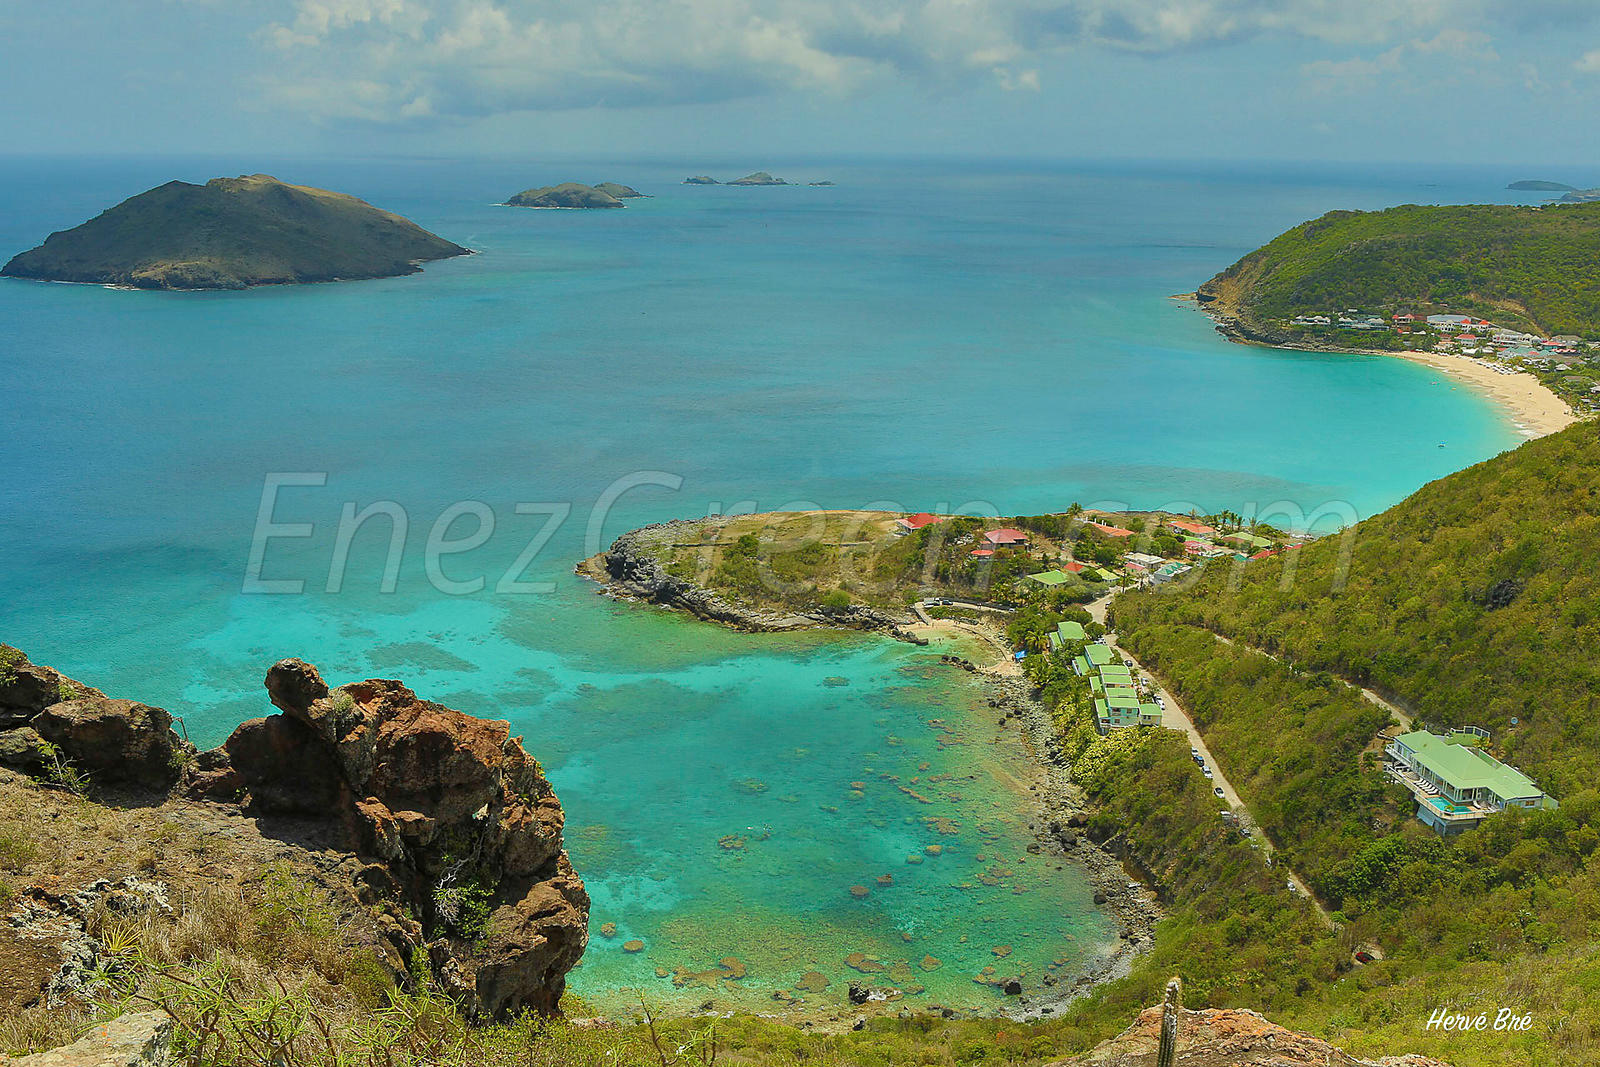 Saint-Barthélemy point of view